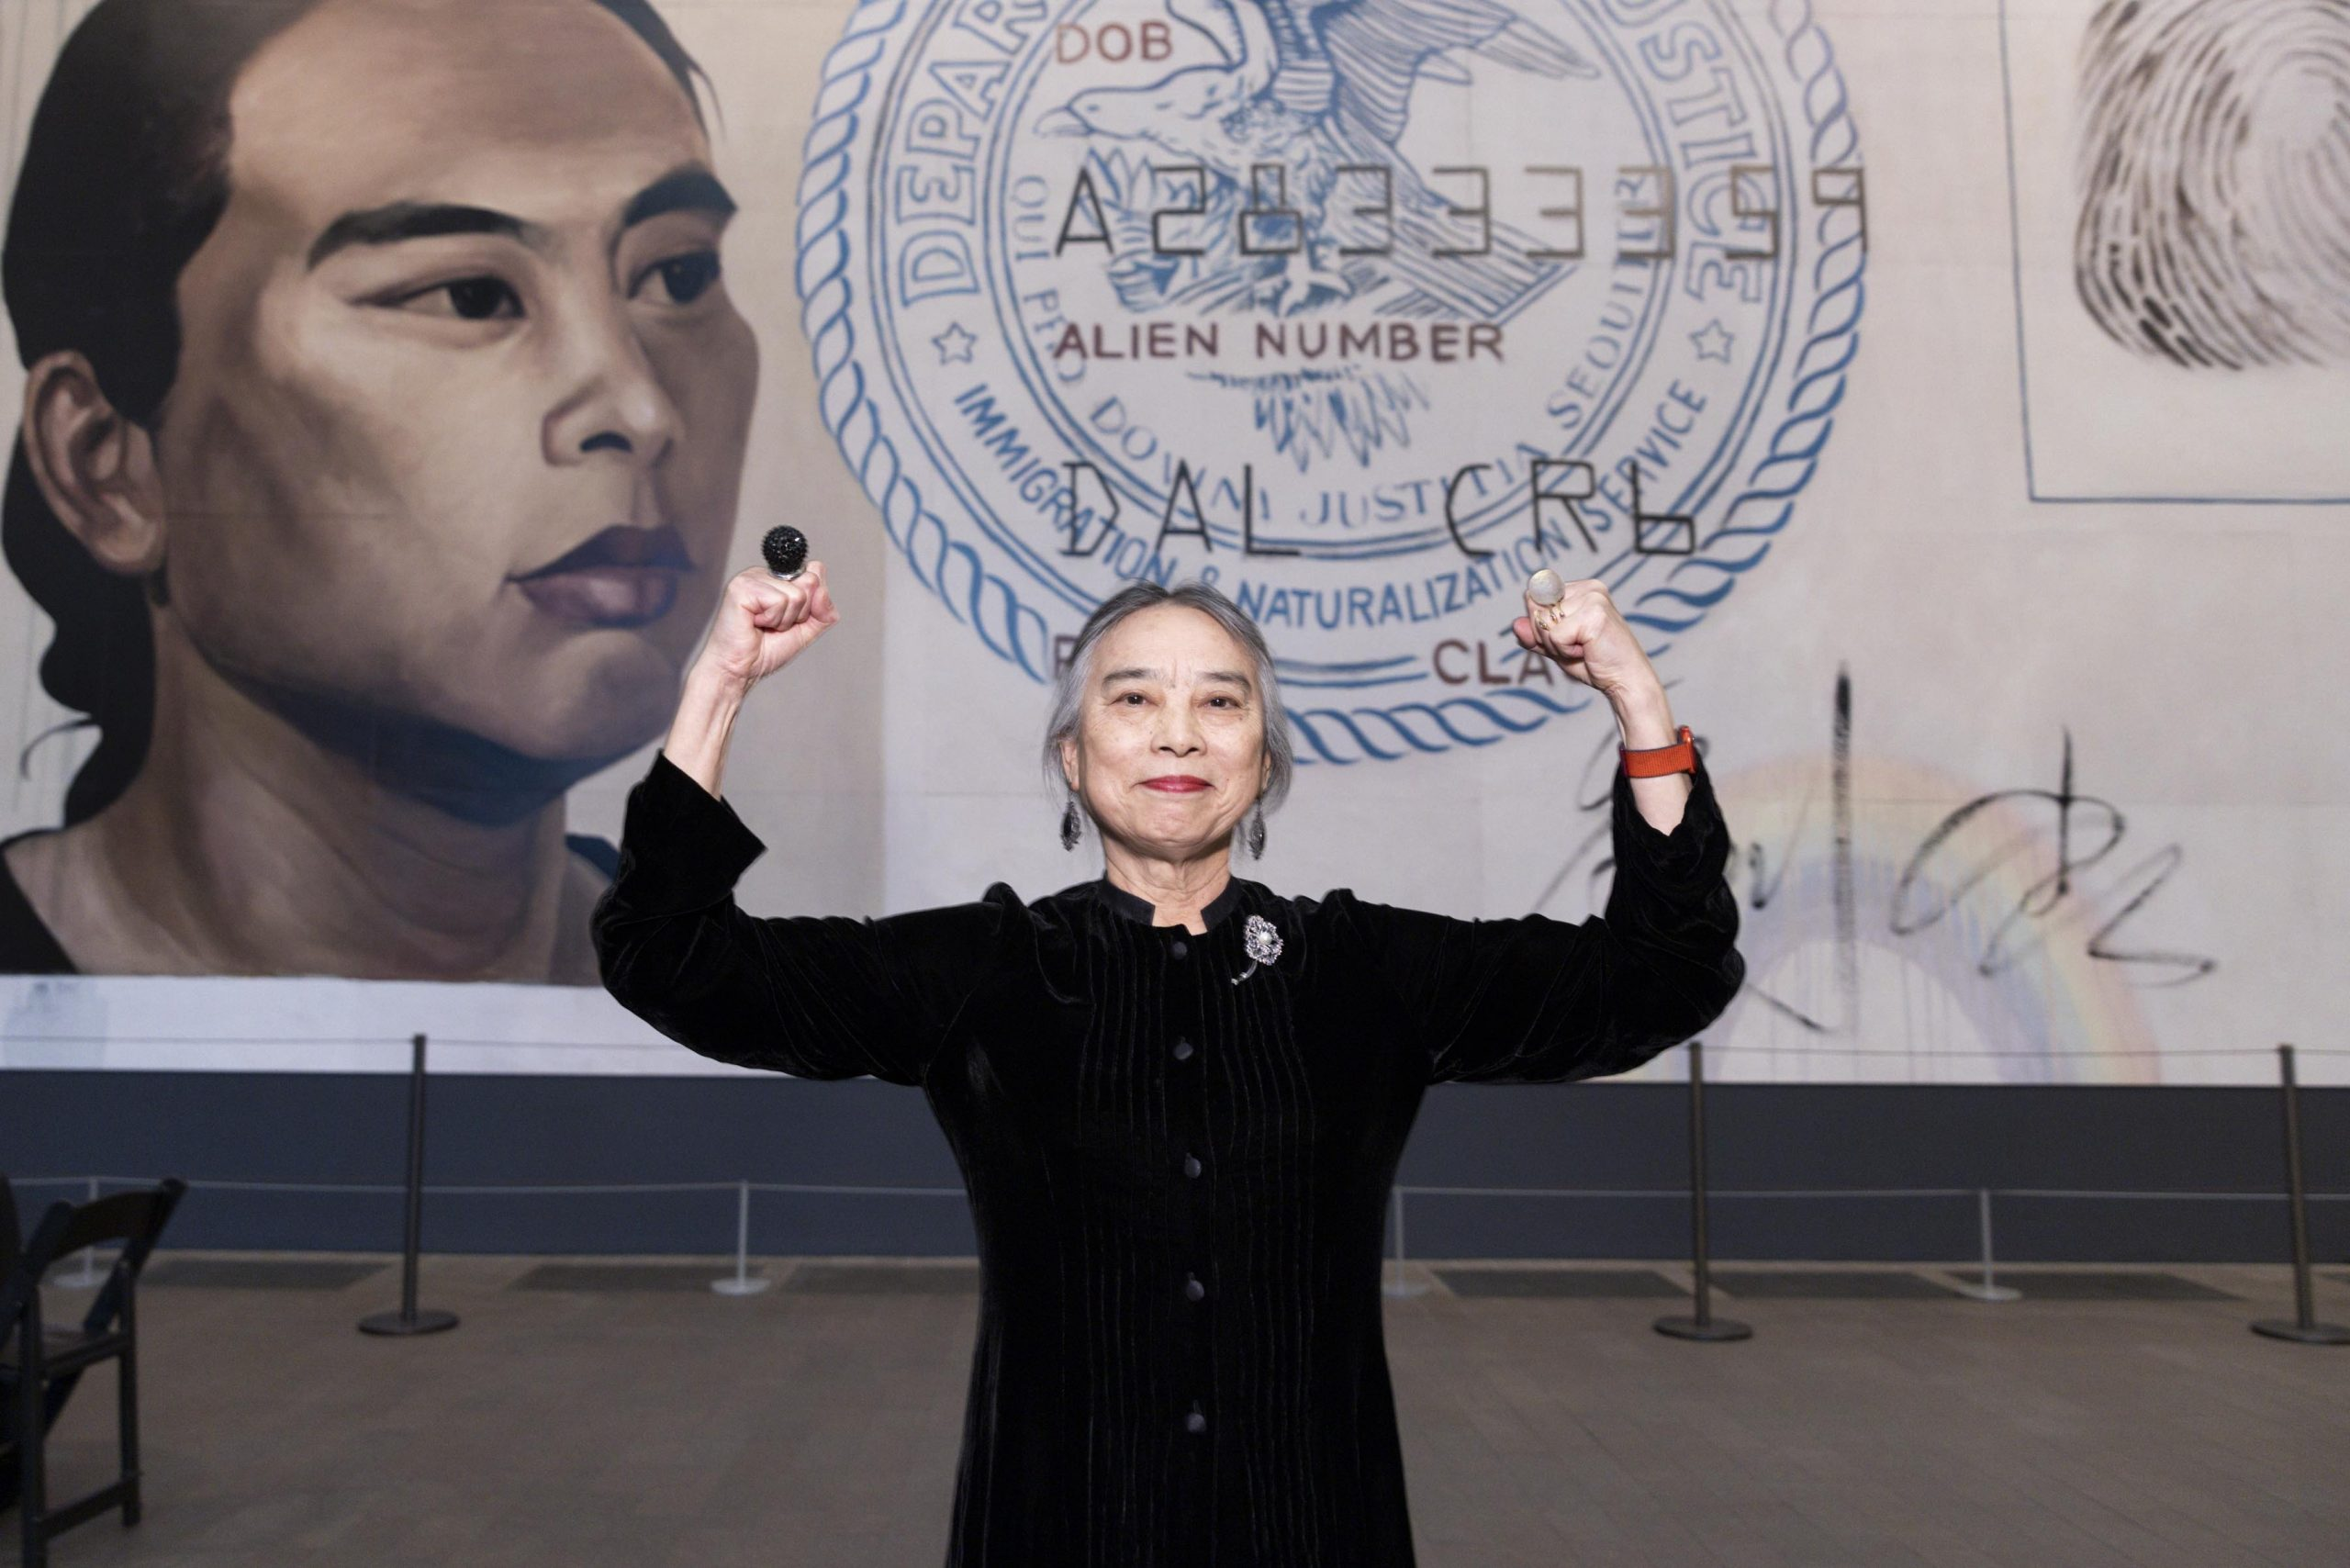 A light-skinned woman of Asian descent stands in front of a large-scale painting of a United States immigration/naturalization identification card. She wears a black button-up dress and stands with both of her arms raised and flexed, in a bicep curl. She smiles slightly. Two large, globular rings on either hand stand out.